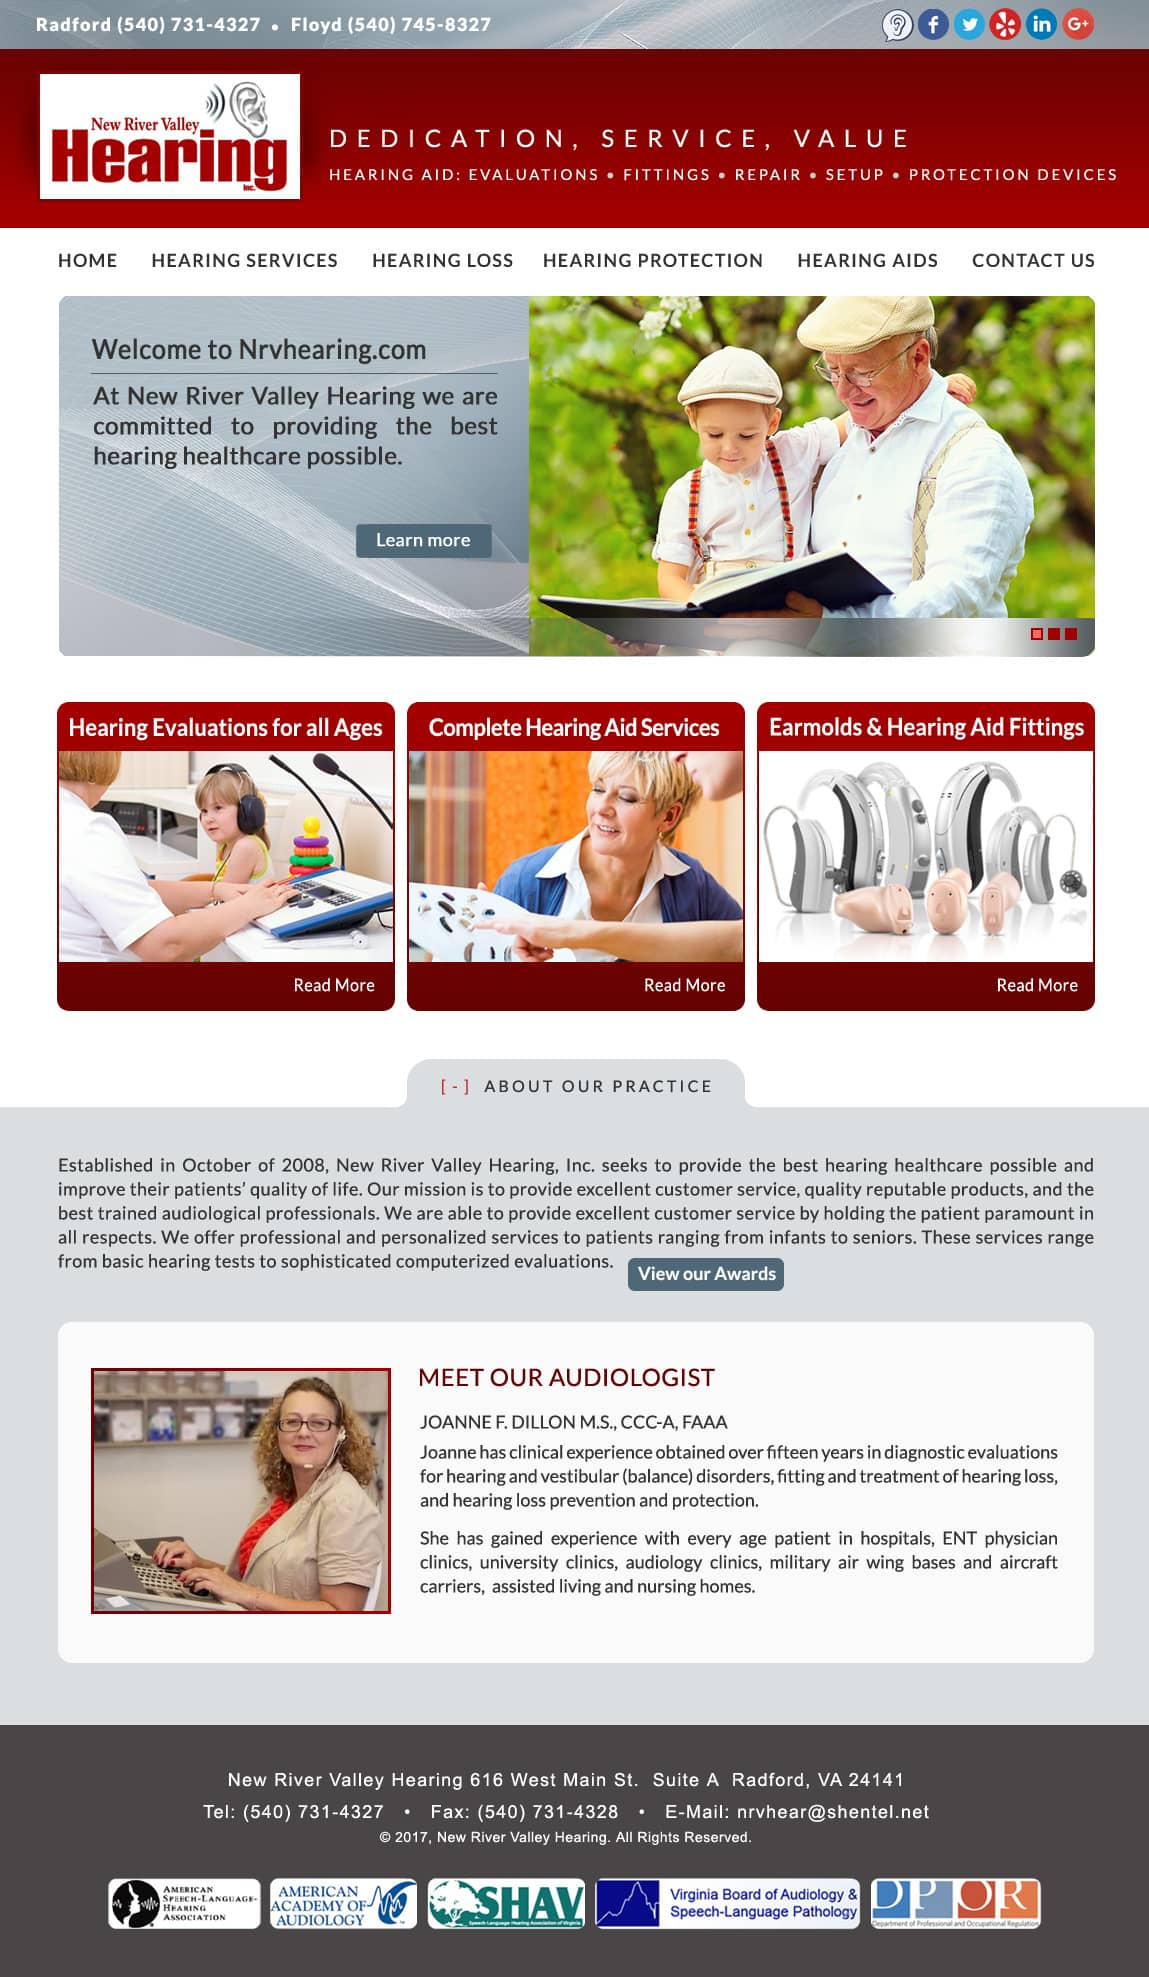 Medical Practice Web Design